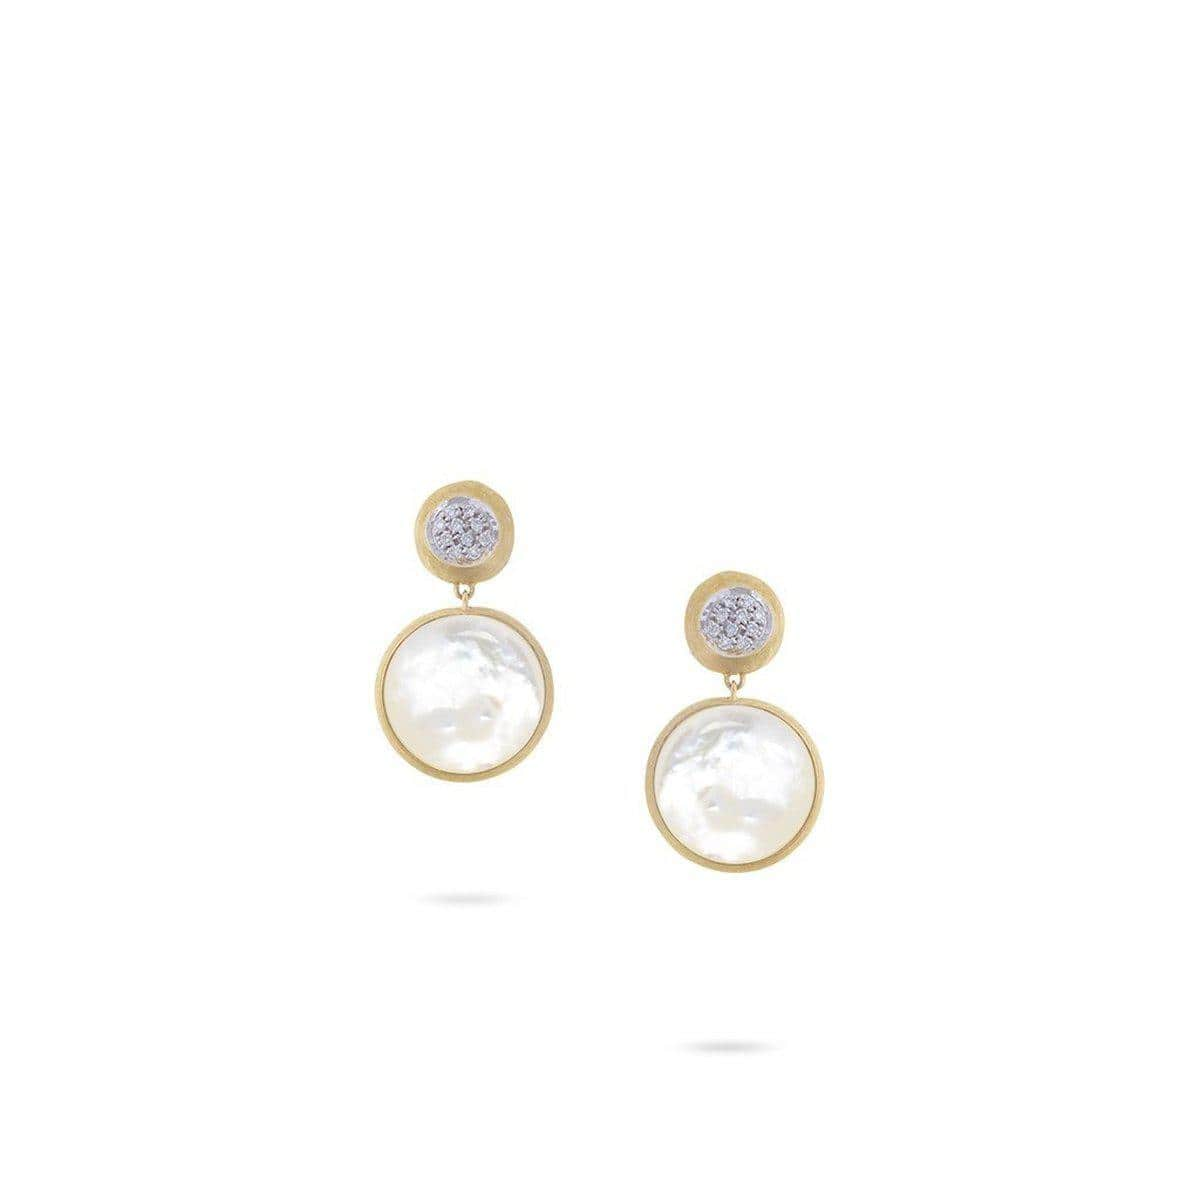 18K Jaipur Earrings - OB856 B MPW YW-Marco Bicego-Renee Taylor Gallery